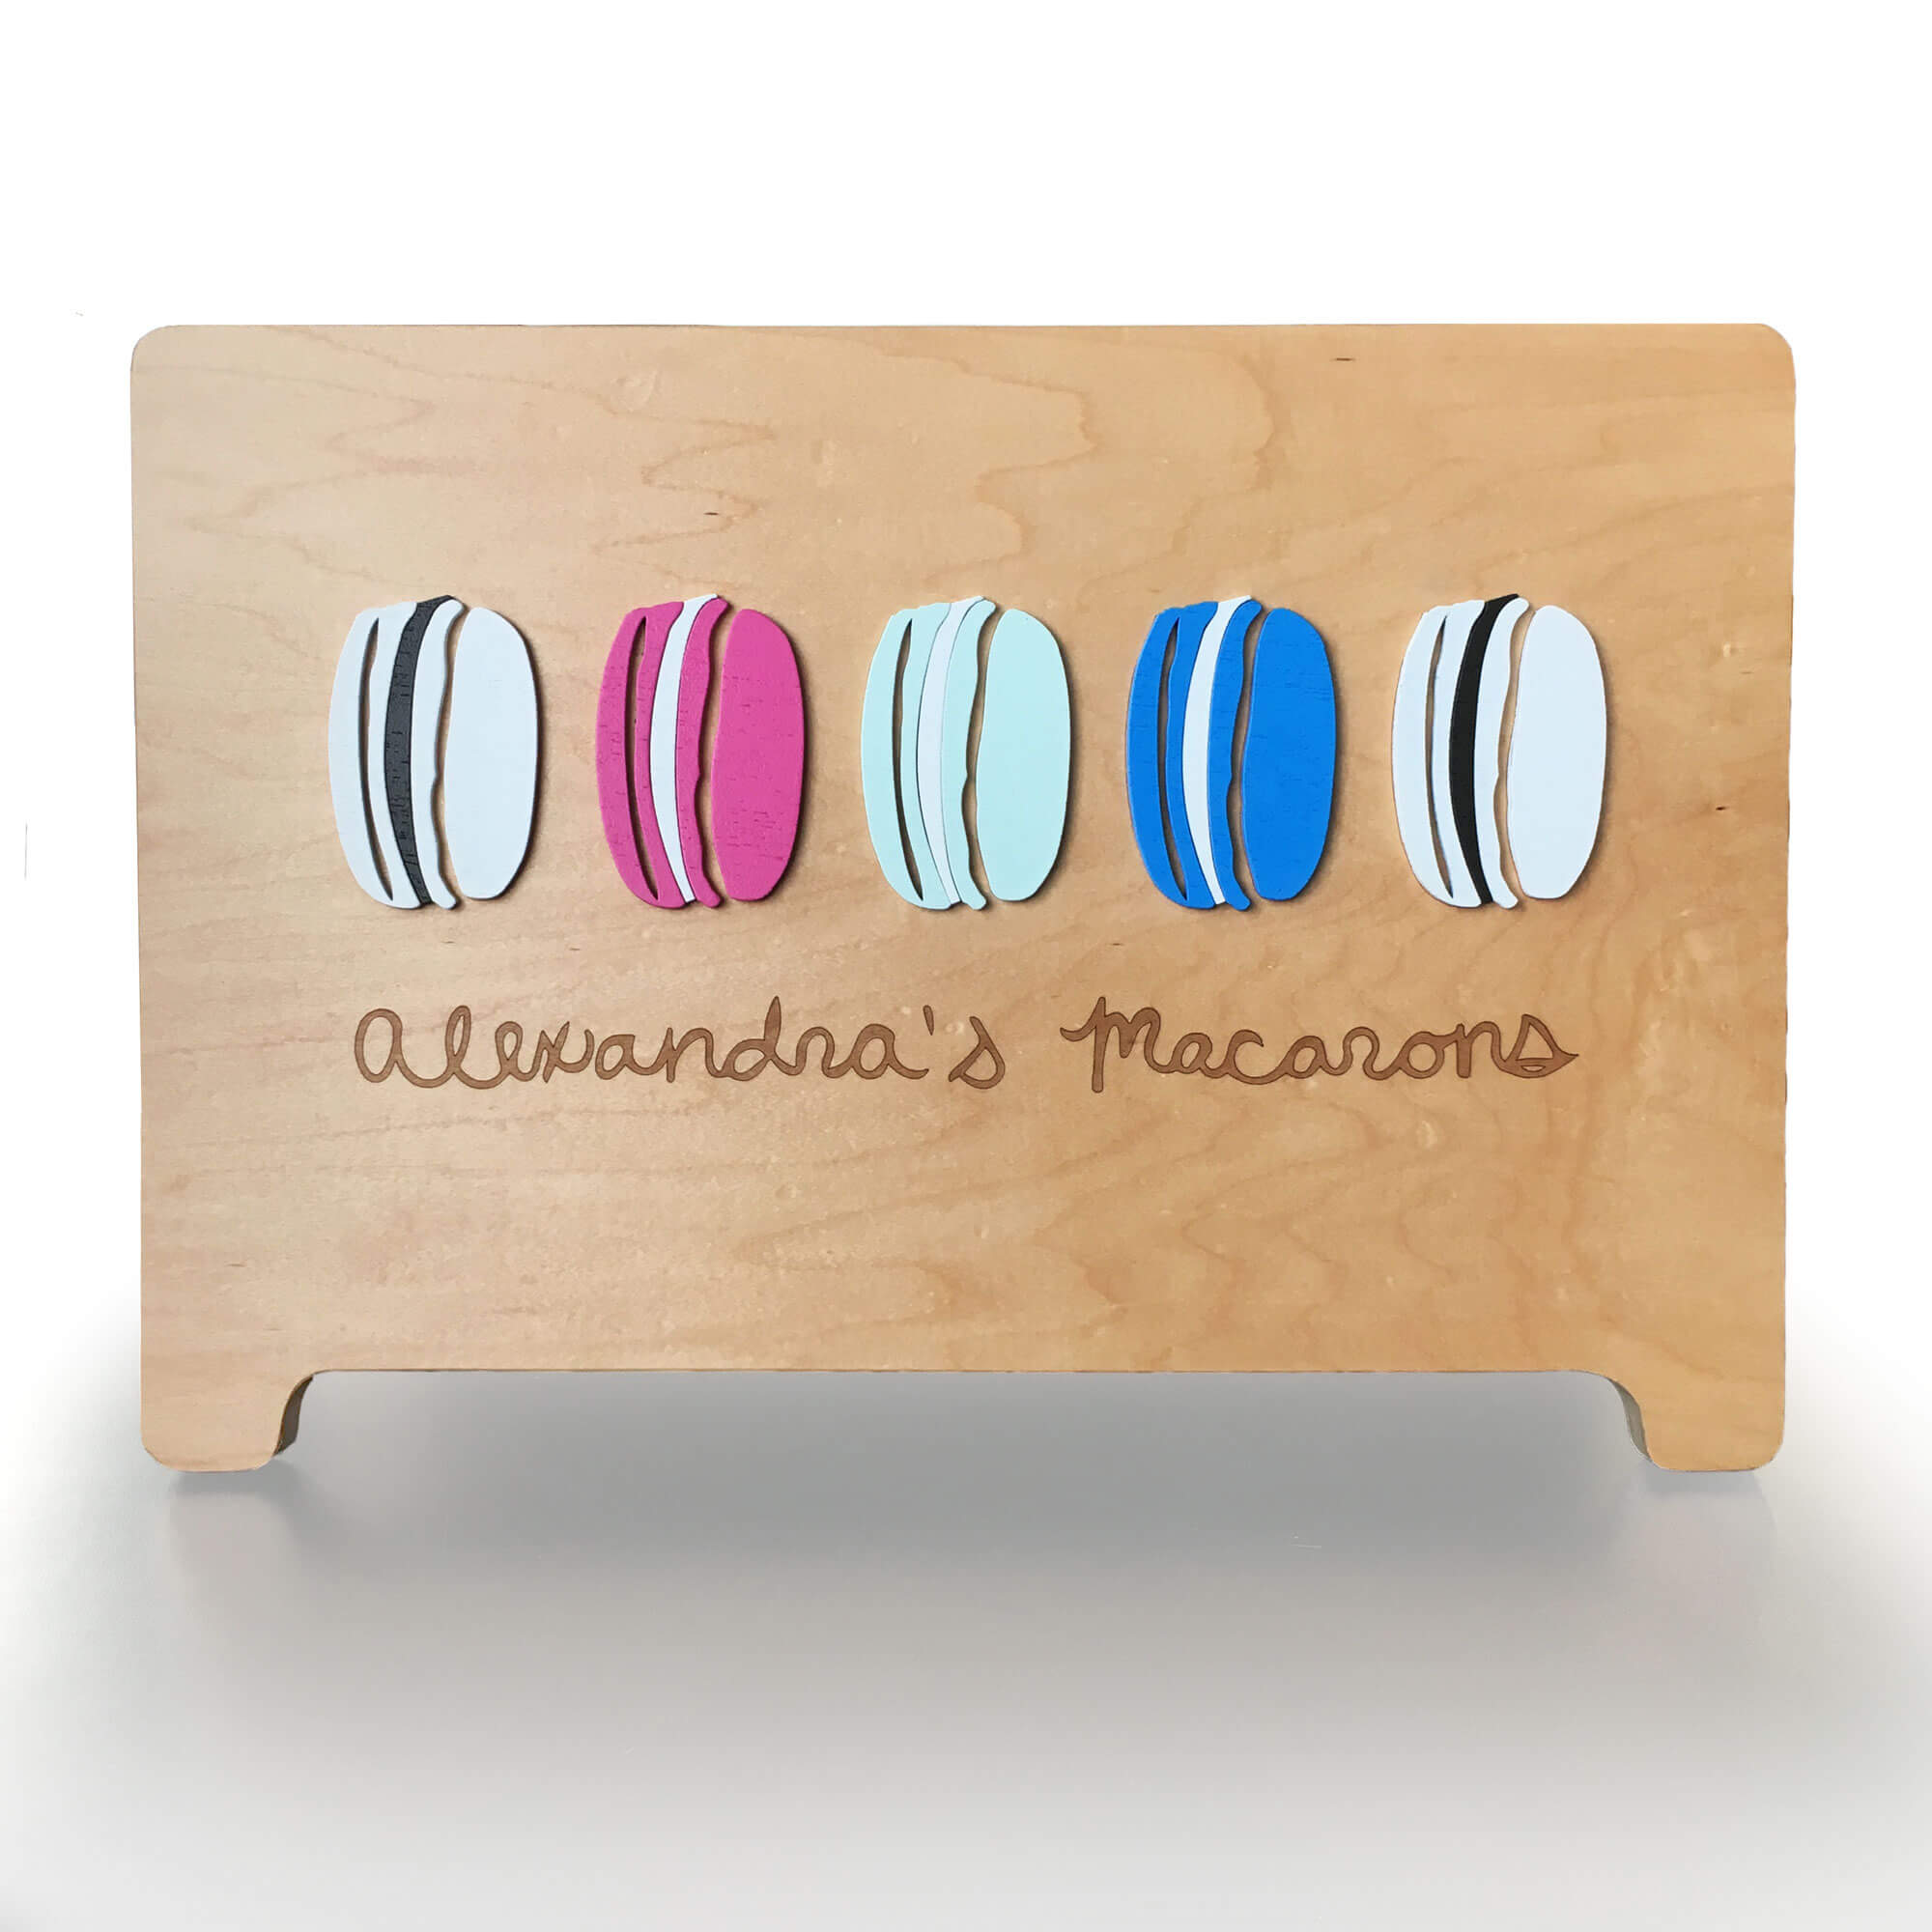 SML created custom, laser cut and painted signage for Alexandra's Macarons of Seattle